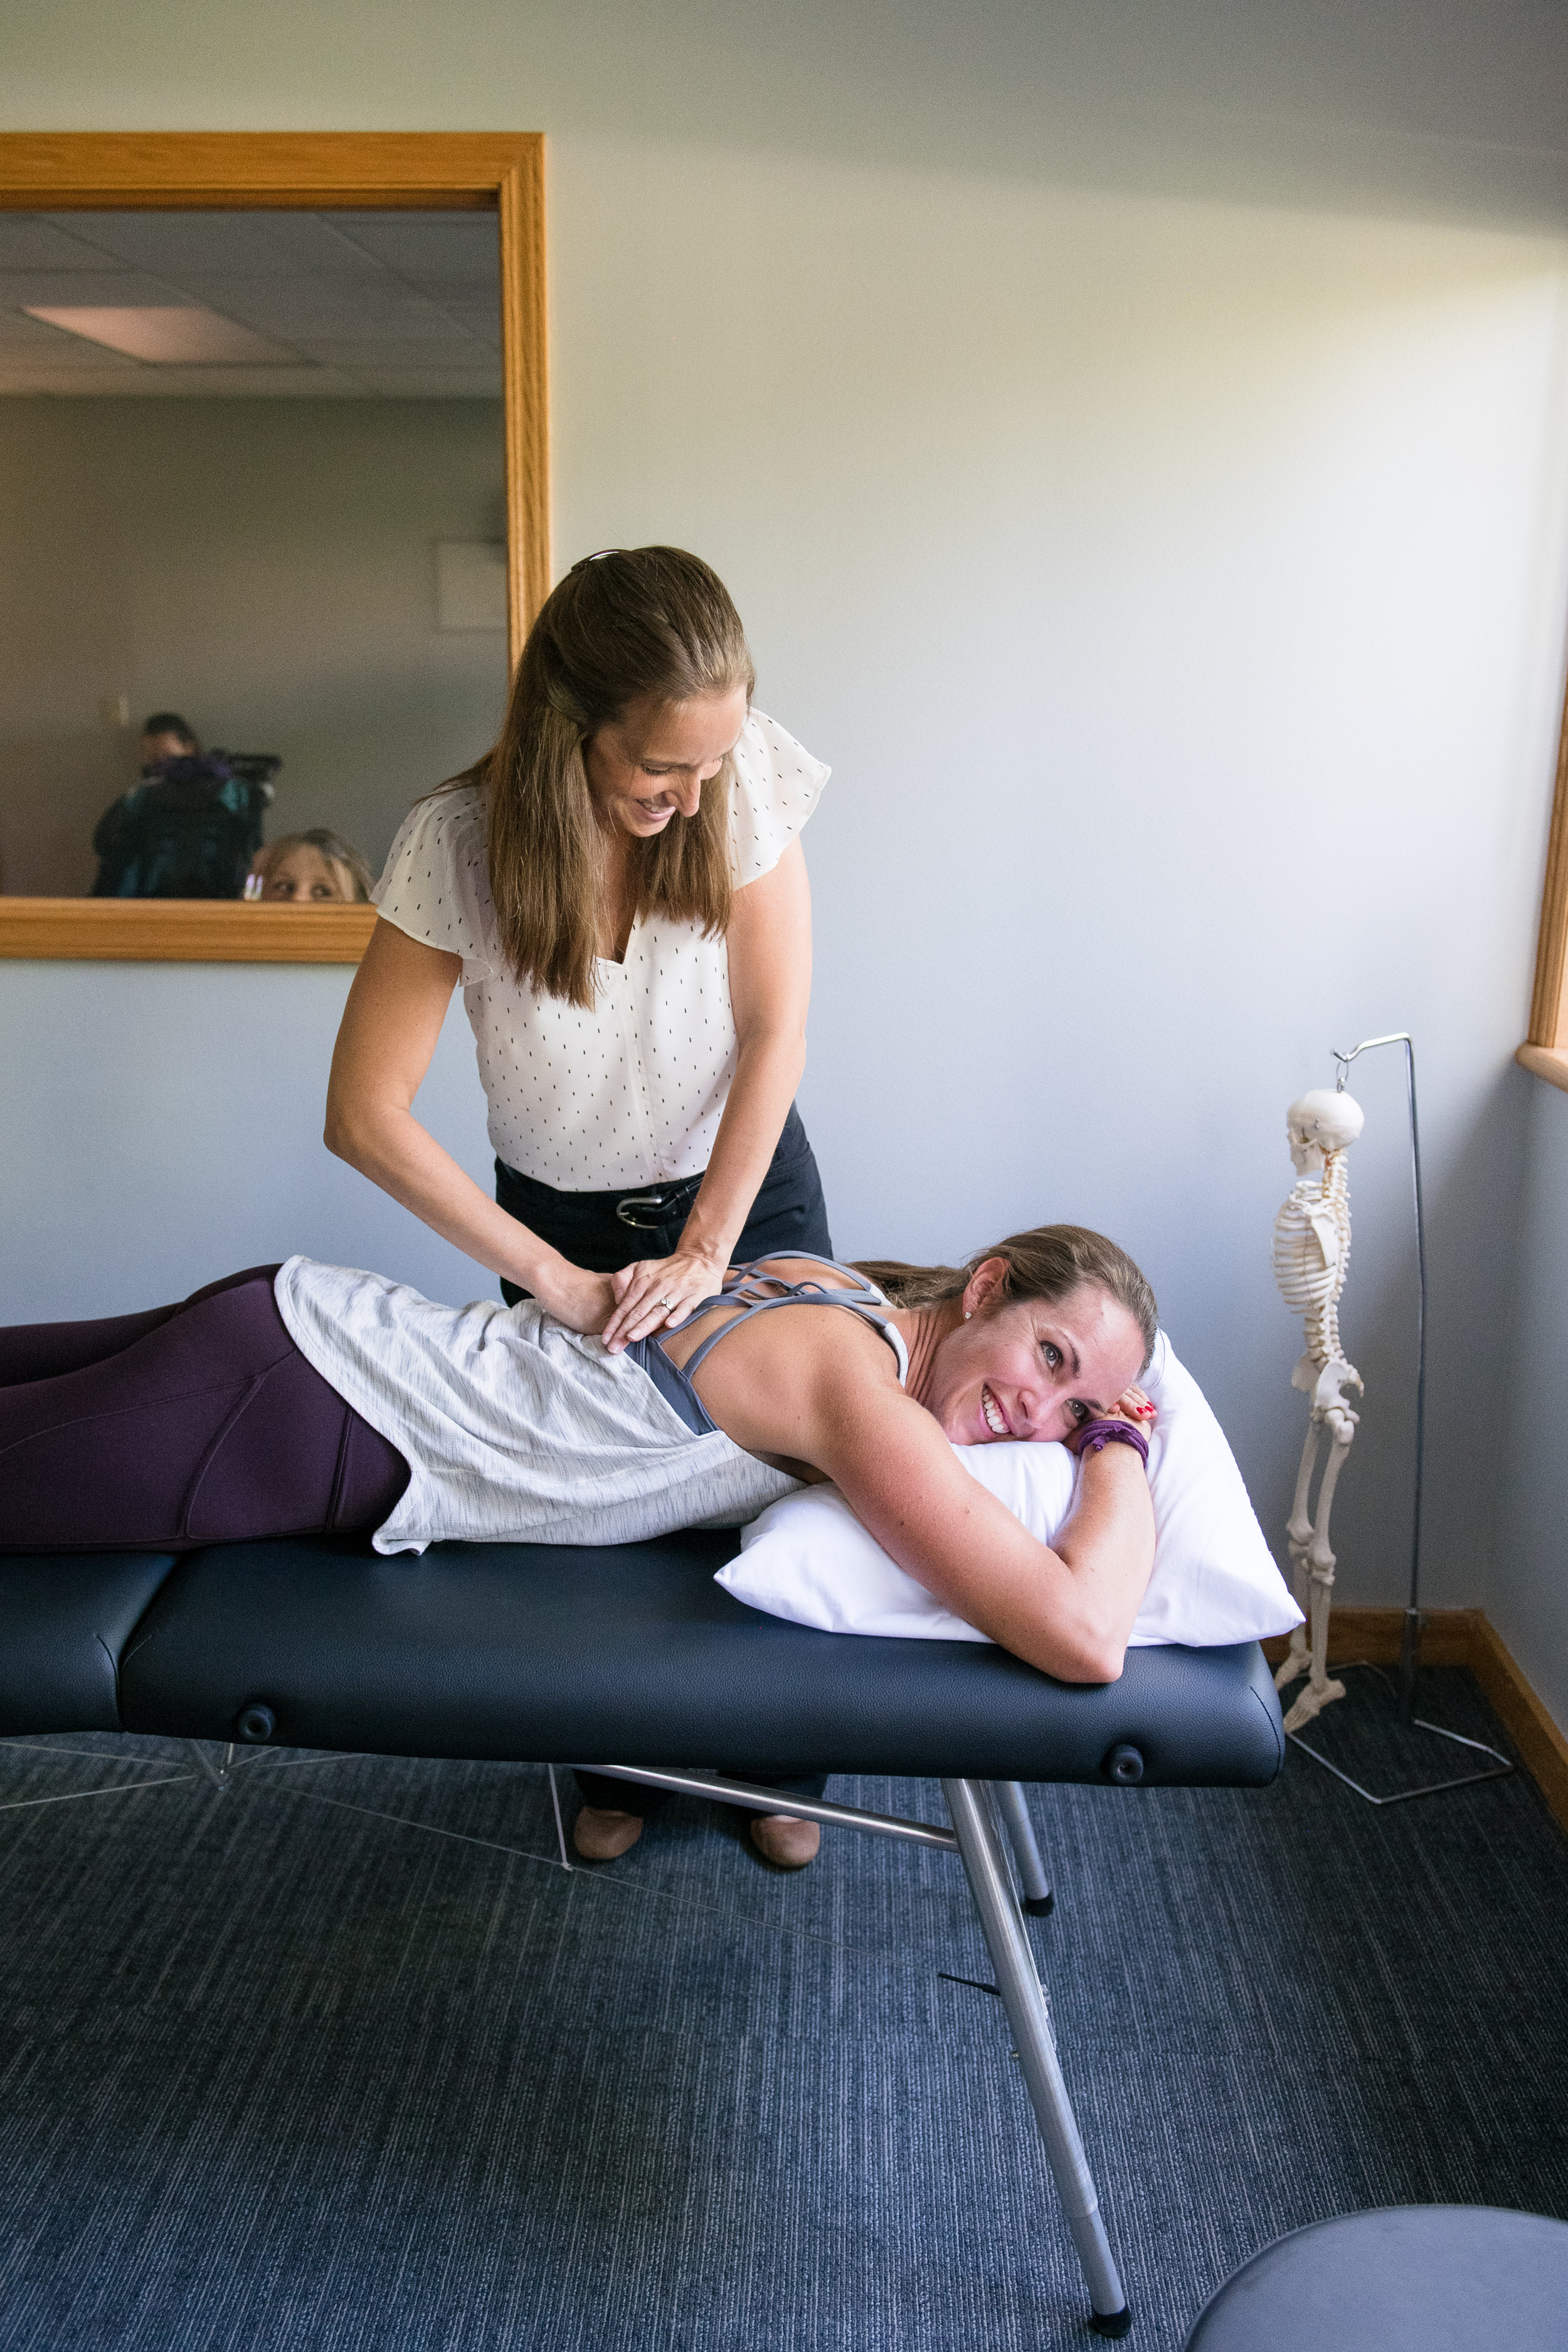 back treatment by physical therapist